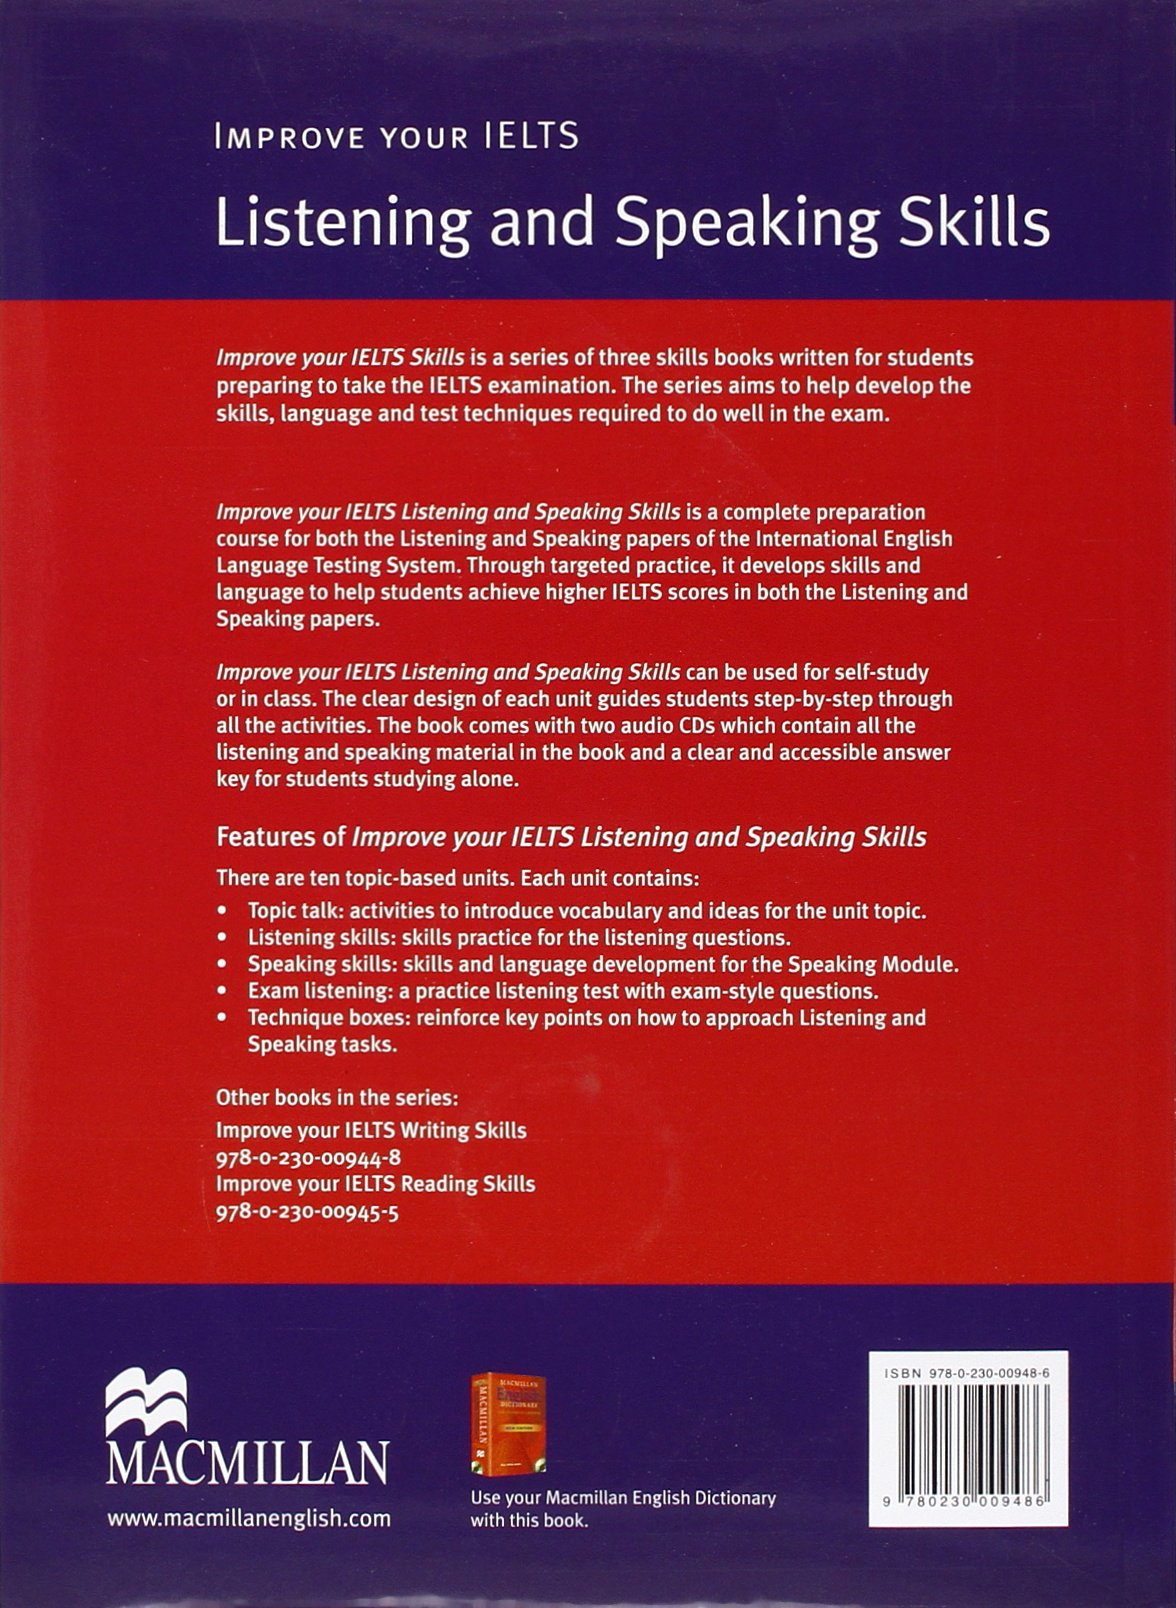 Listening & Speaking Skills: Barry Cusack: 9780230009486: Amazon.com: Books